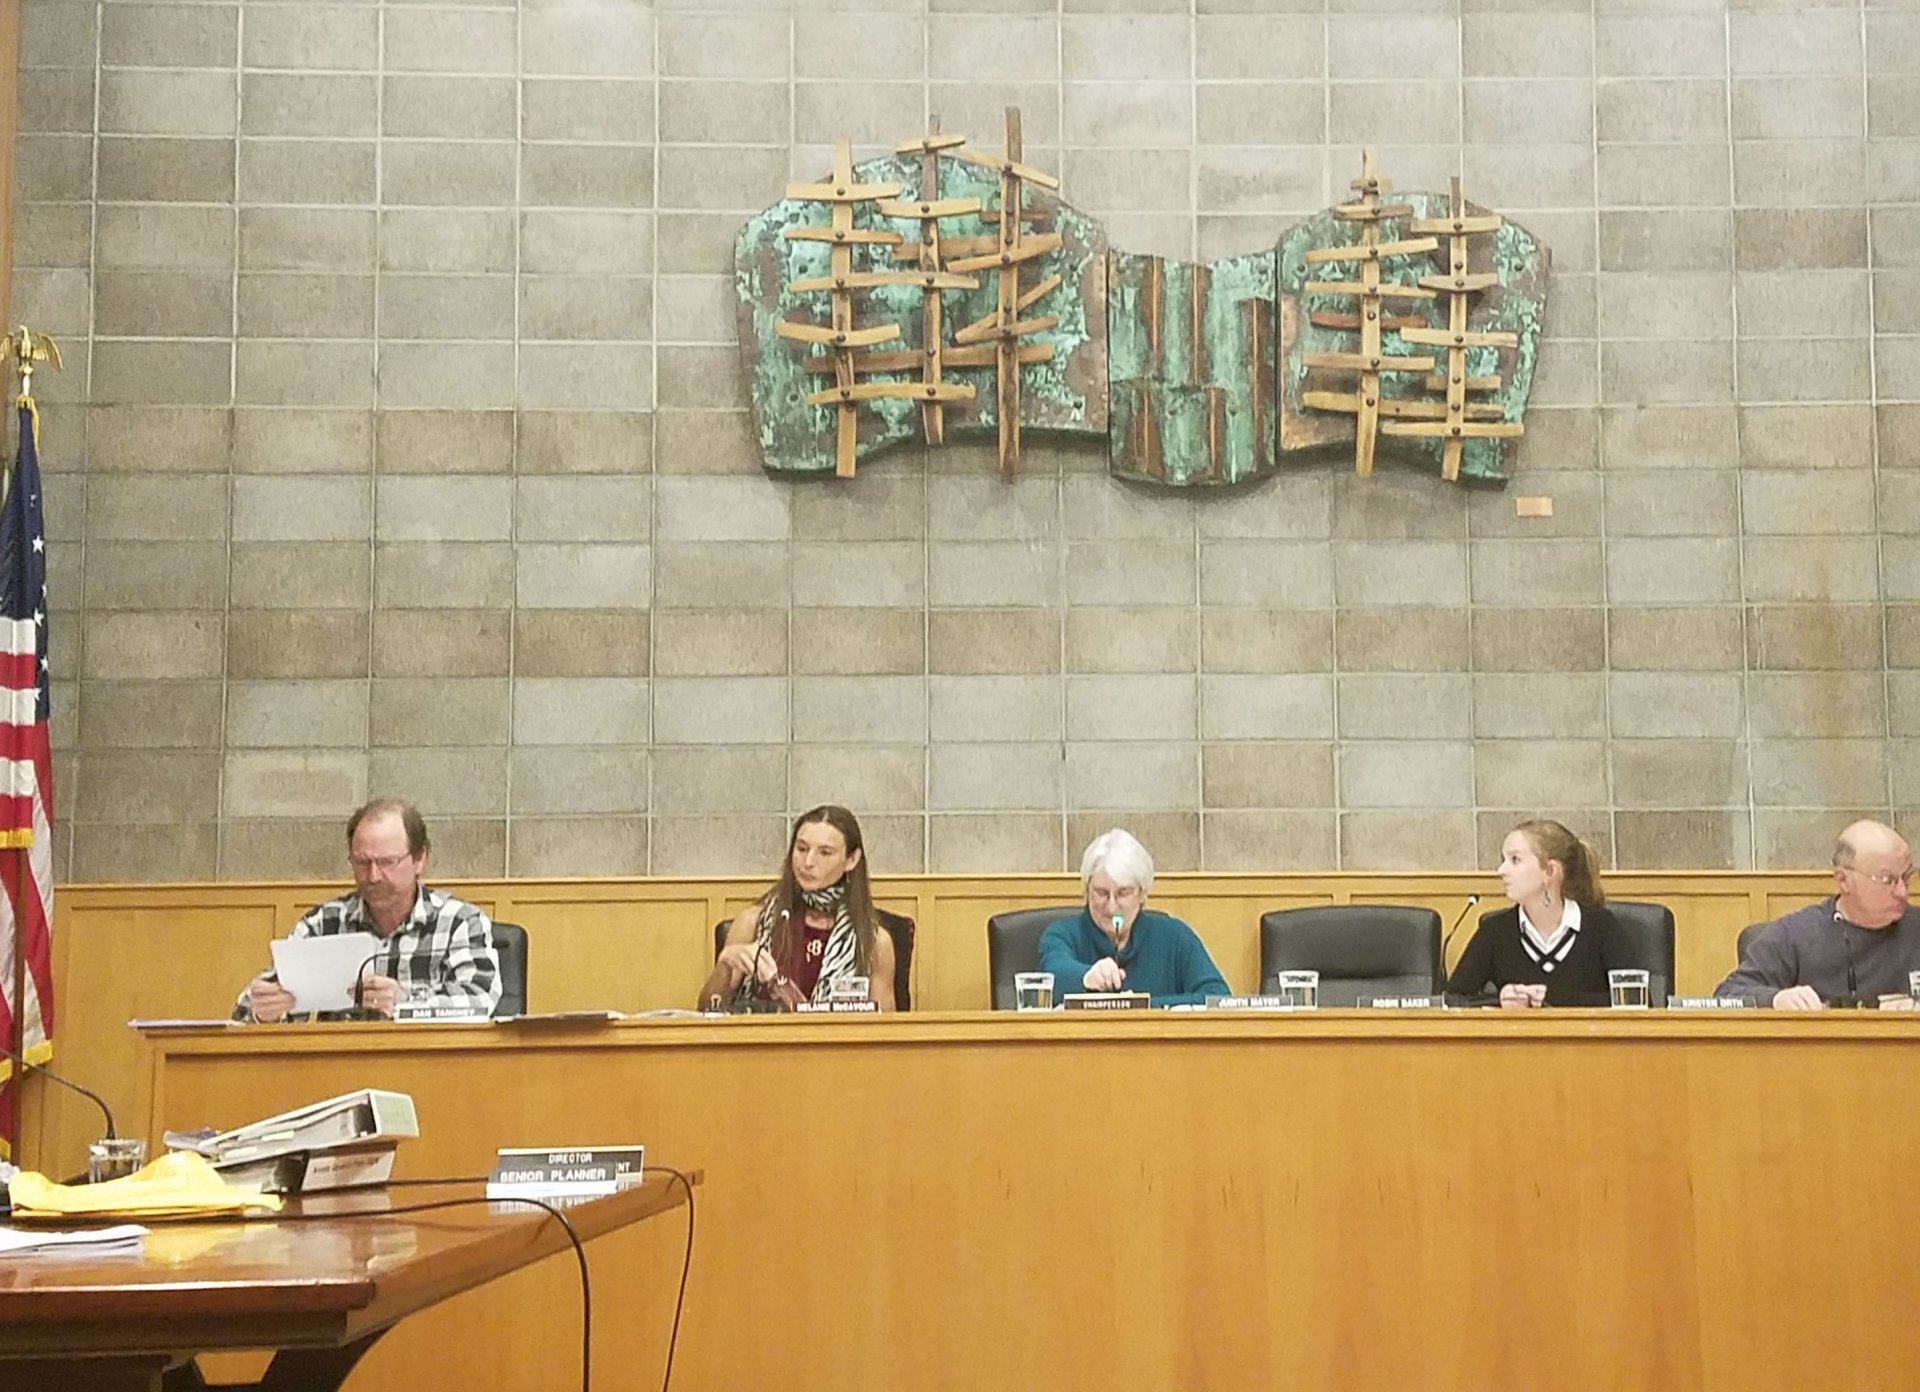 From left to right: commissioners Daniel Tangey, Melanie McCavour, Judith Mayer, Kristen Orth and John Barstow at Arcata City Hall on Feb. 13. Photo by Surya Gopalan.